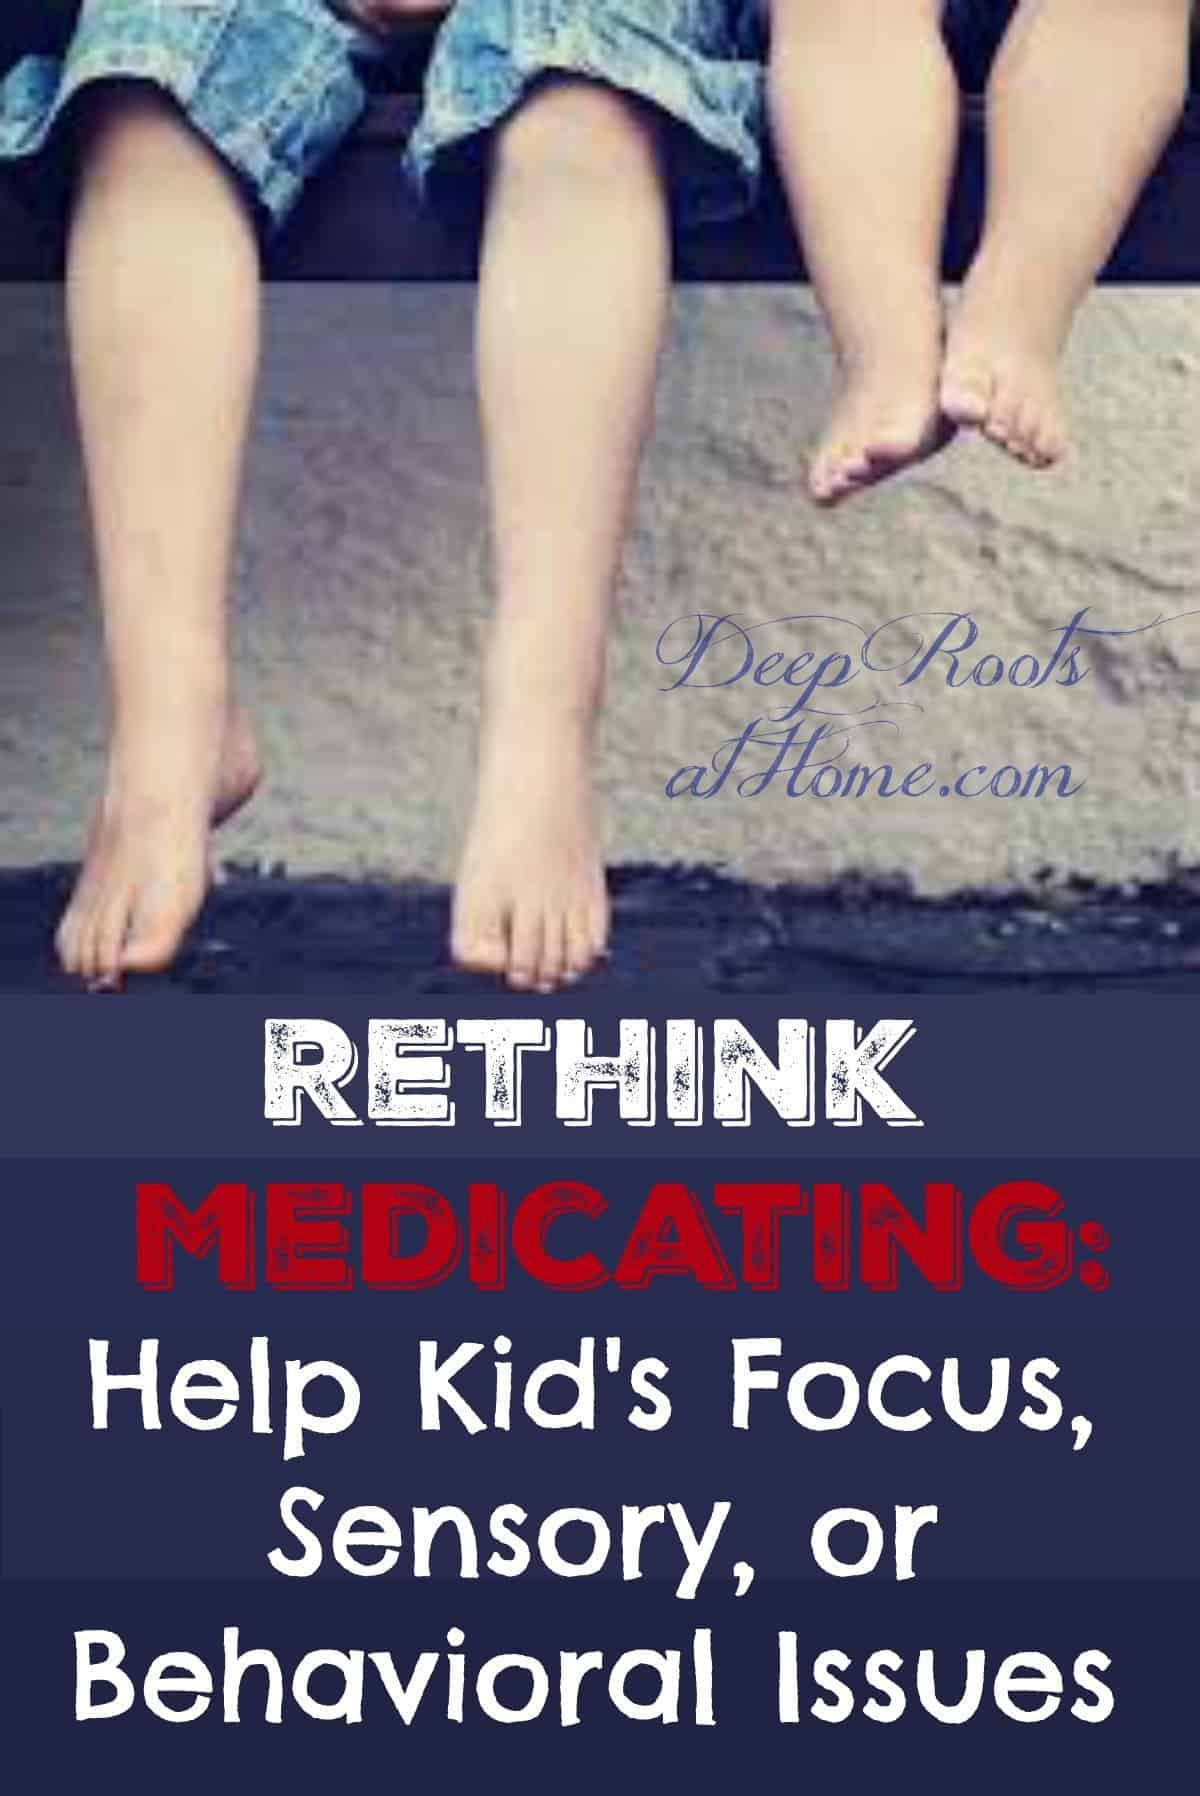 Rethink Medicating: Help Kid's Focus, Sensory, or Behavioral Issues Two young boys dangling their legs over a ledge, barefoot.